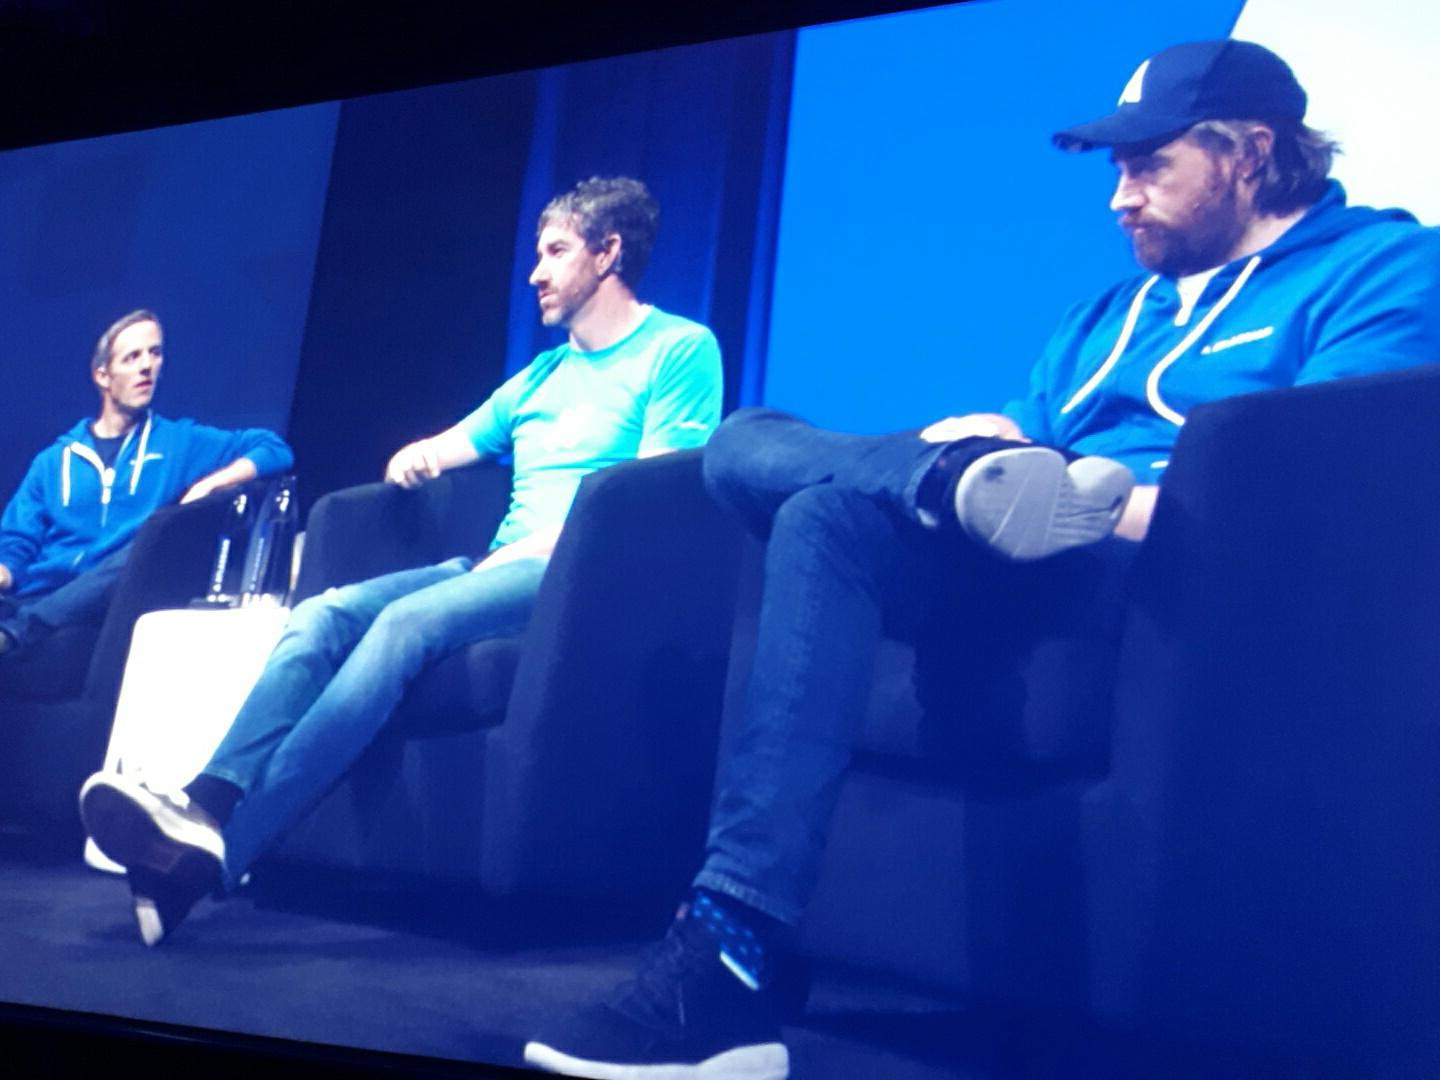 Jay Simons, Scott Farquhar, and Mike Cannon-Brookes